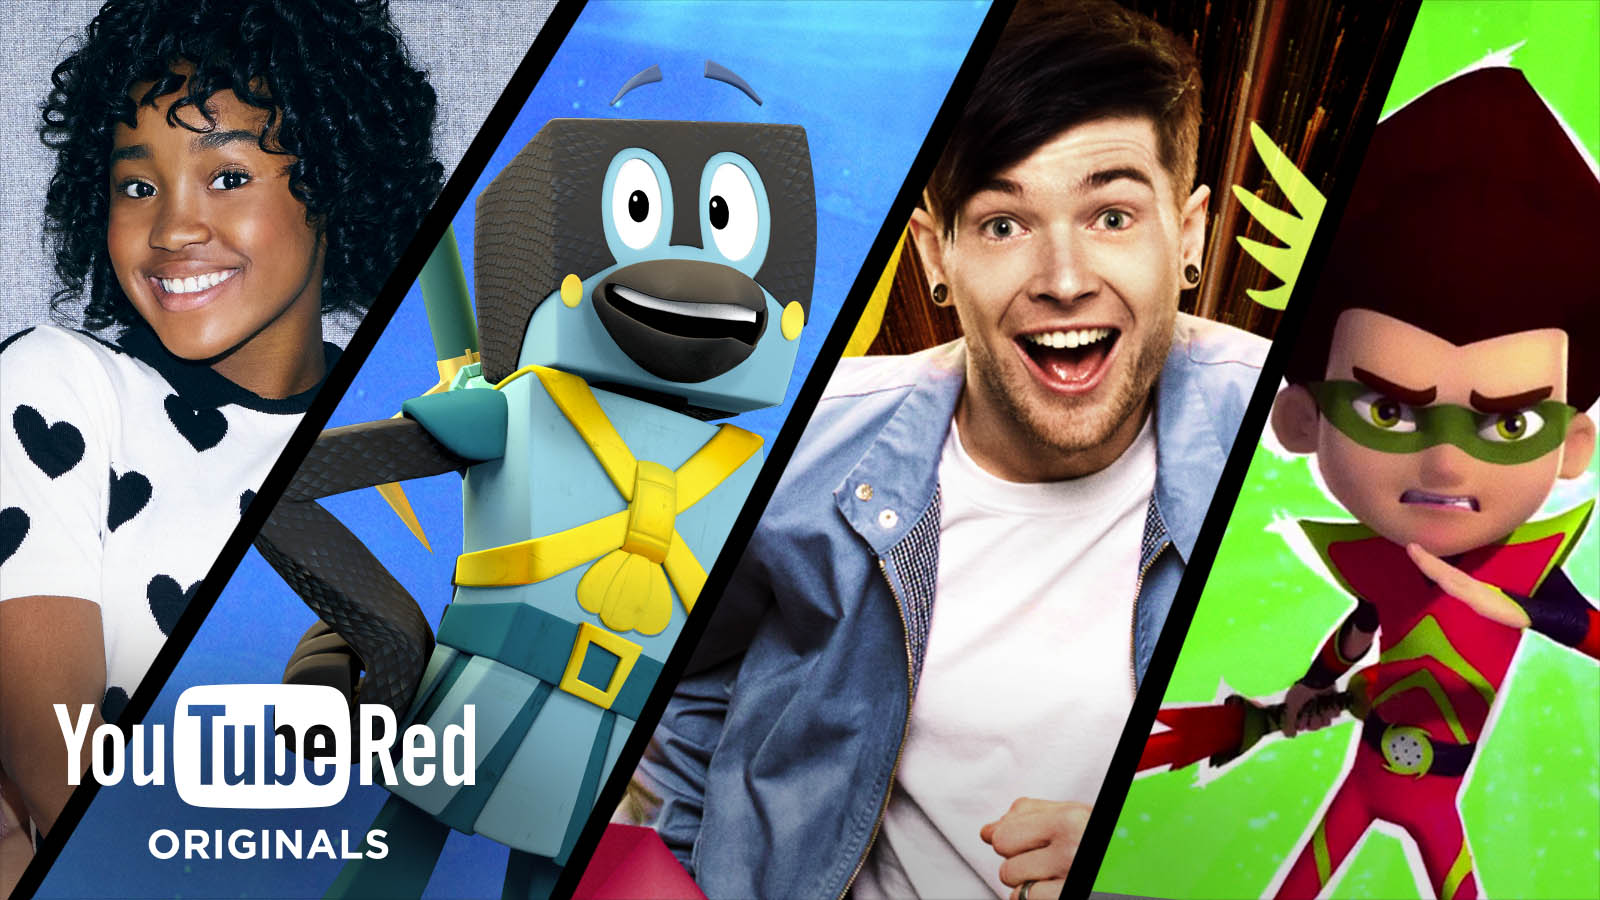 Following controversies over kids' content, YouTube makes several YouTube Red family shows free